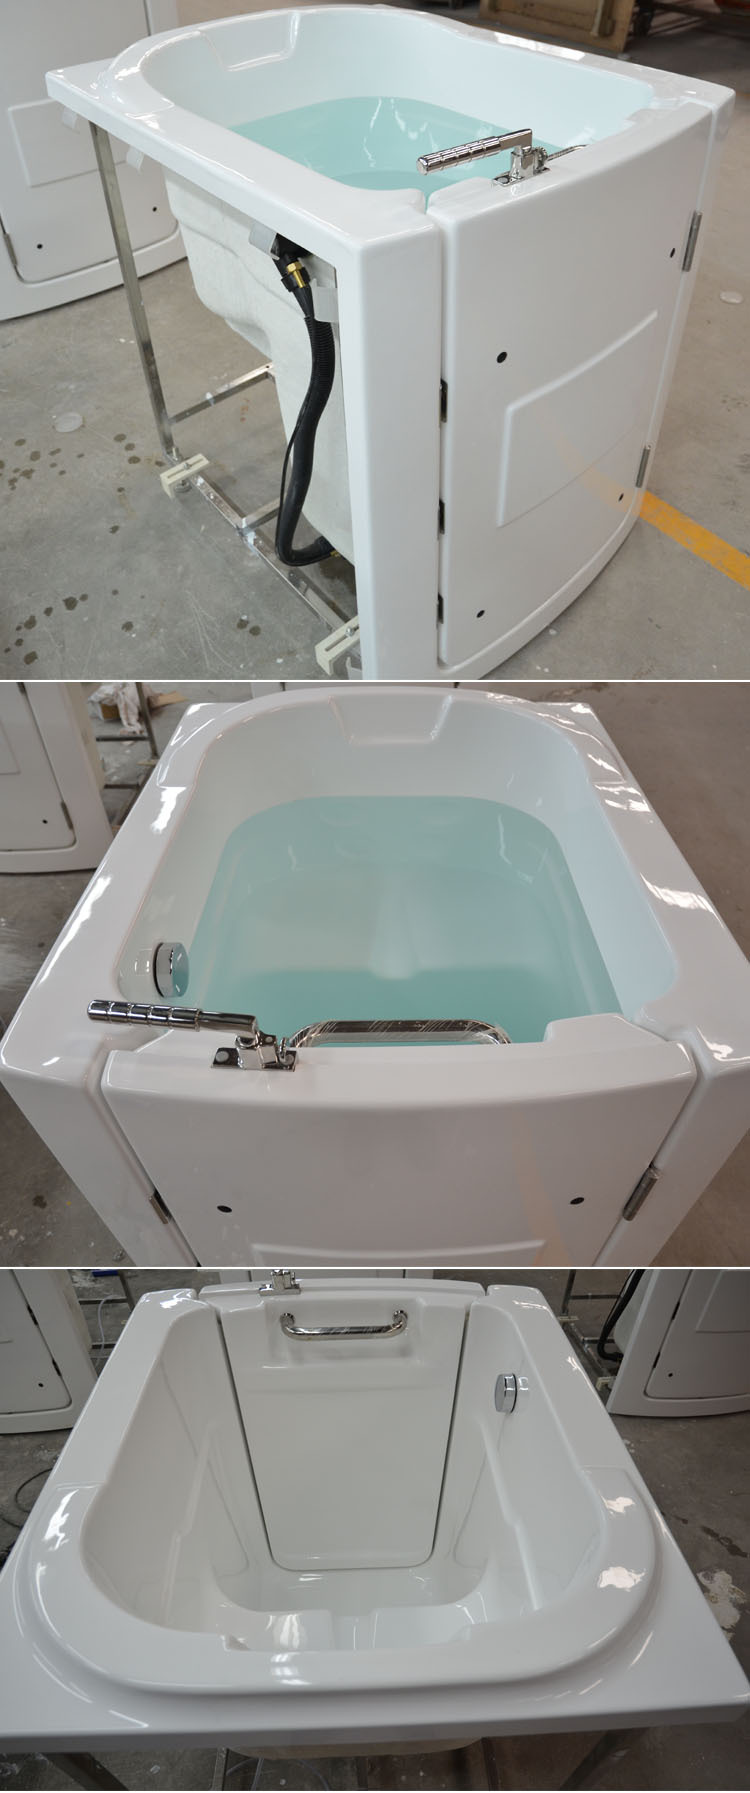 Bathtub for old people and disabled people,disabled people bathtub ...